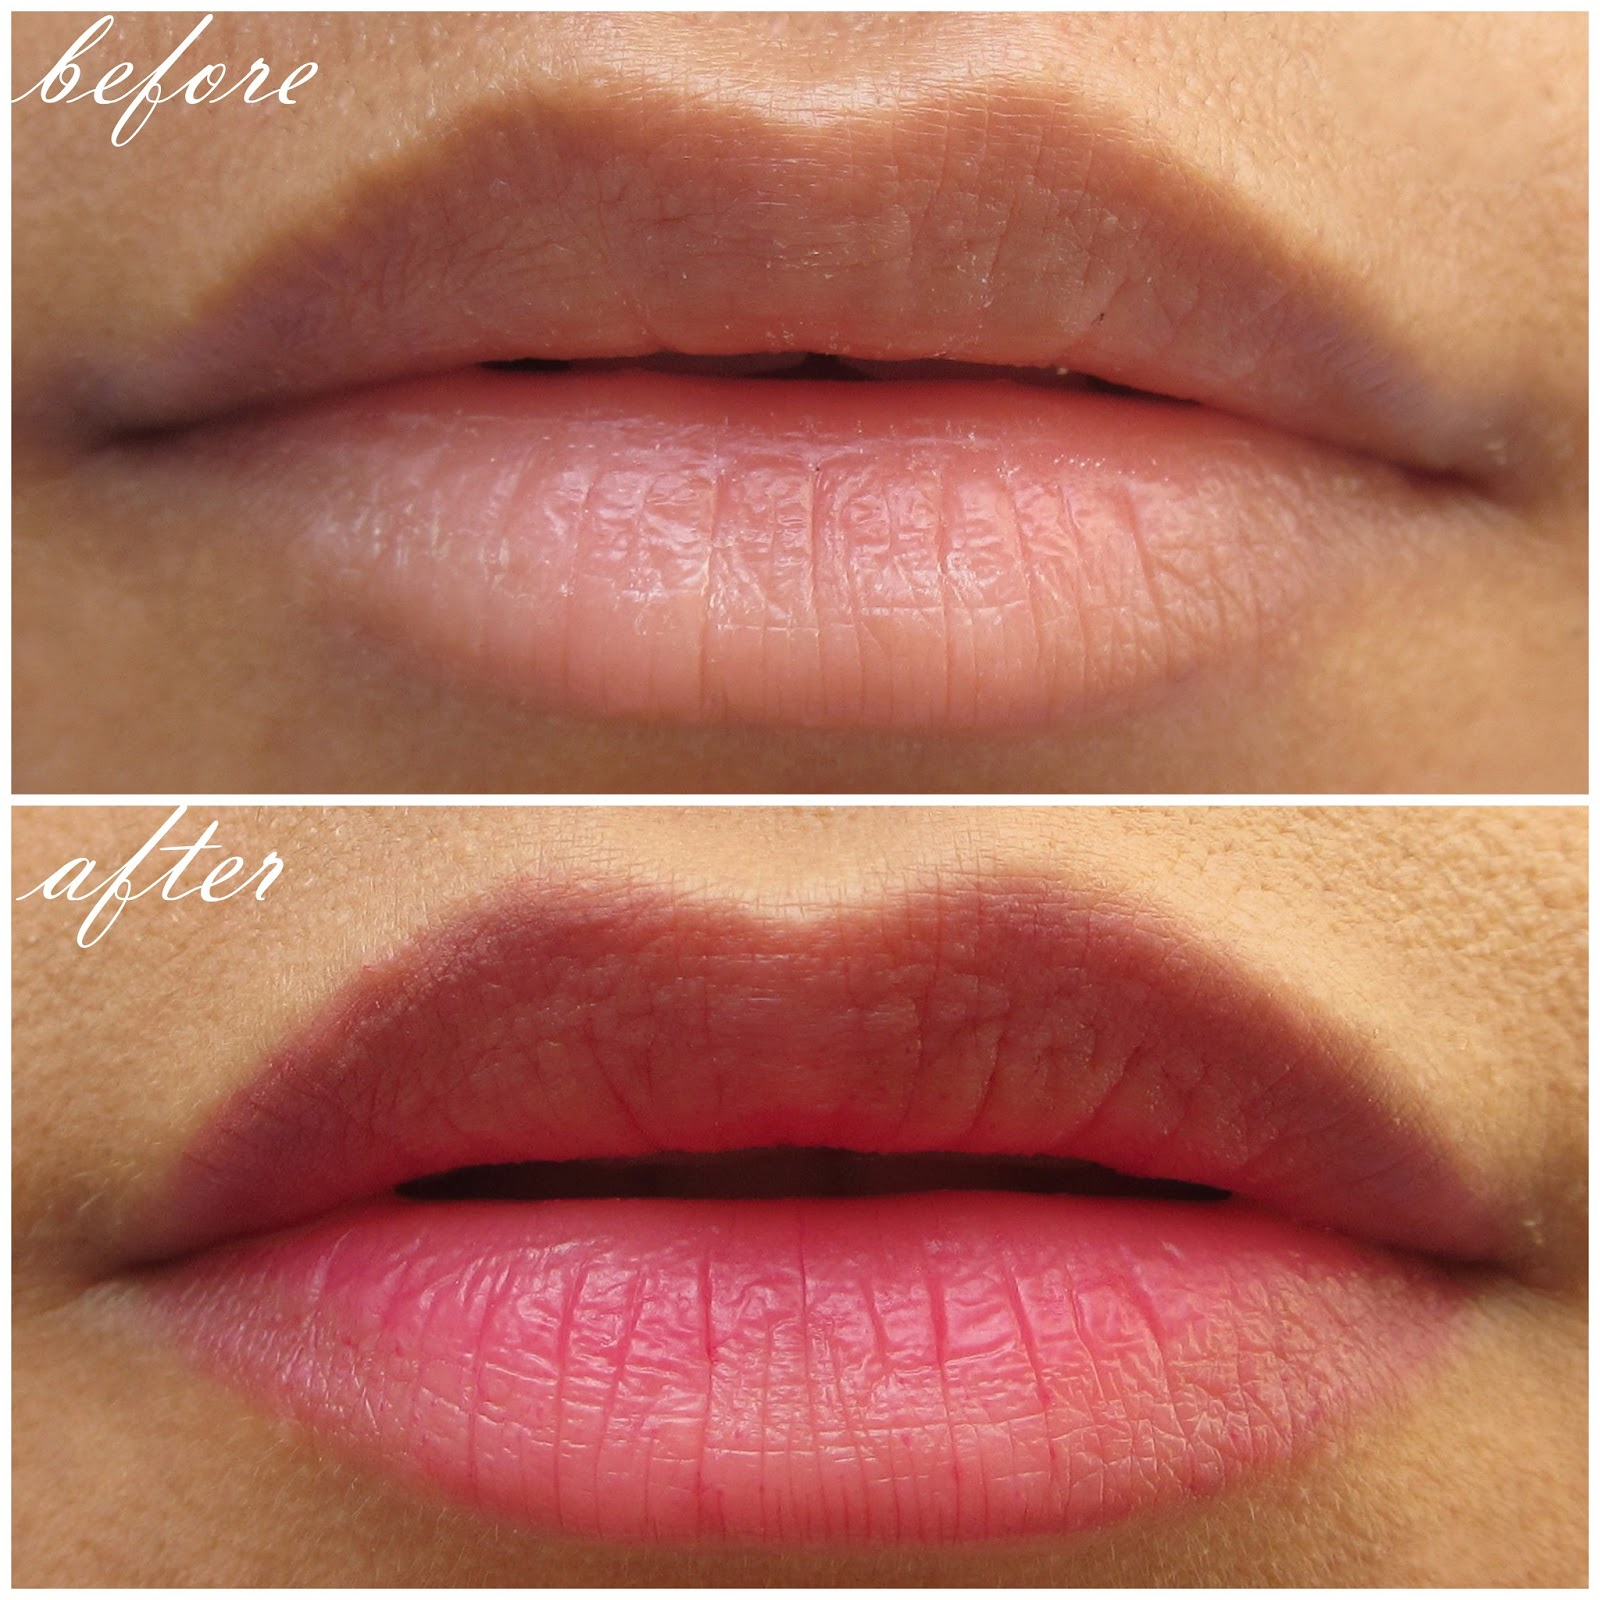 Lip tints and lip stains are the next best thing for adding some color to your lips but without all the hassle. They cling to lips all day long and stay there. The pigment won't travel to your teeth, and you won't have to worry about post-meal reapplication.